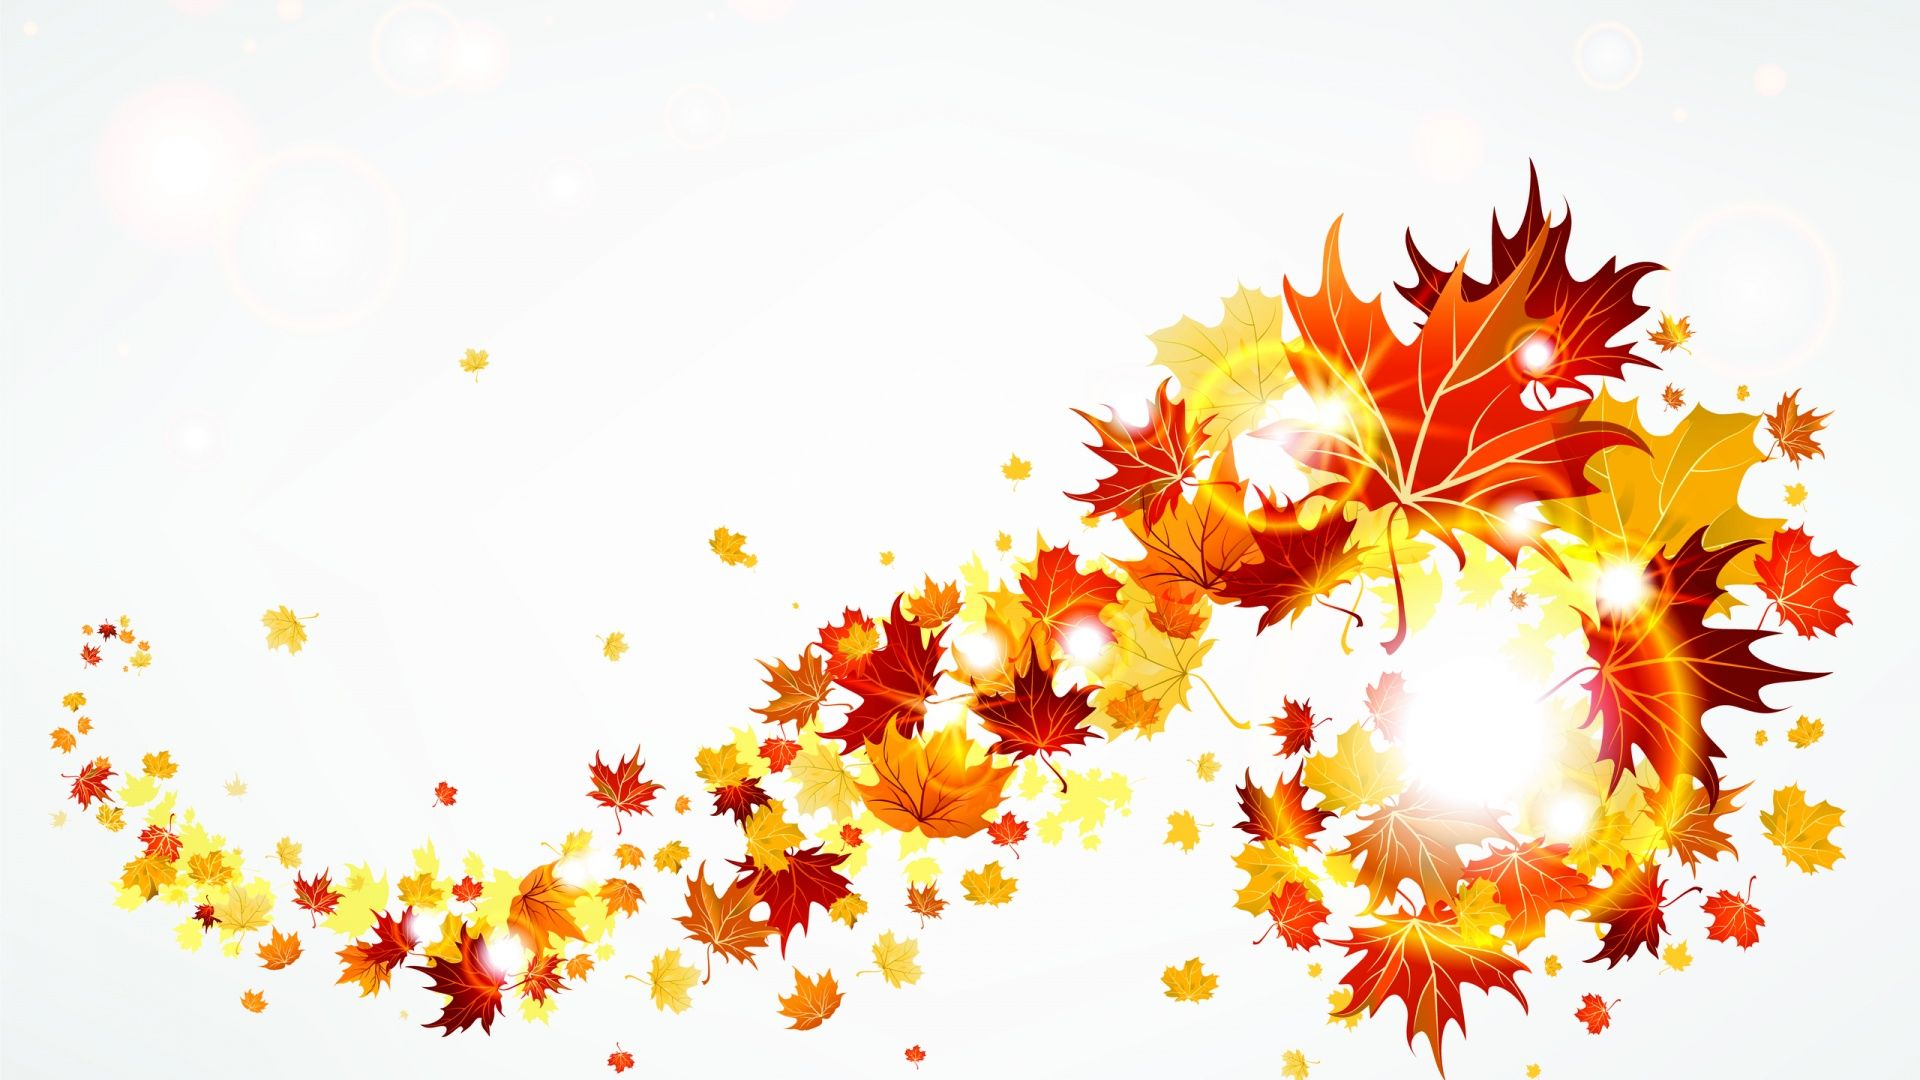 Fall Leaves Wallpaper Border Free Wallpaper Cliparts Download Free Clip Art Free Clip